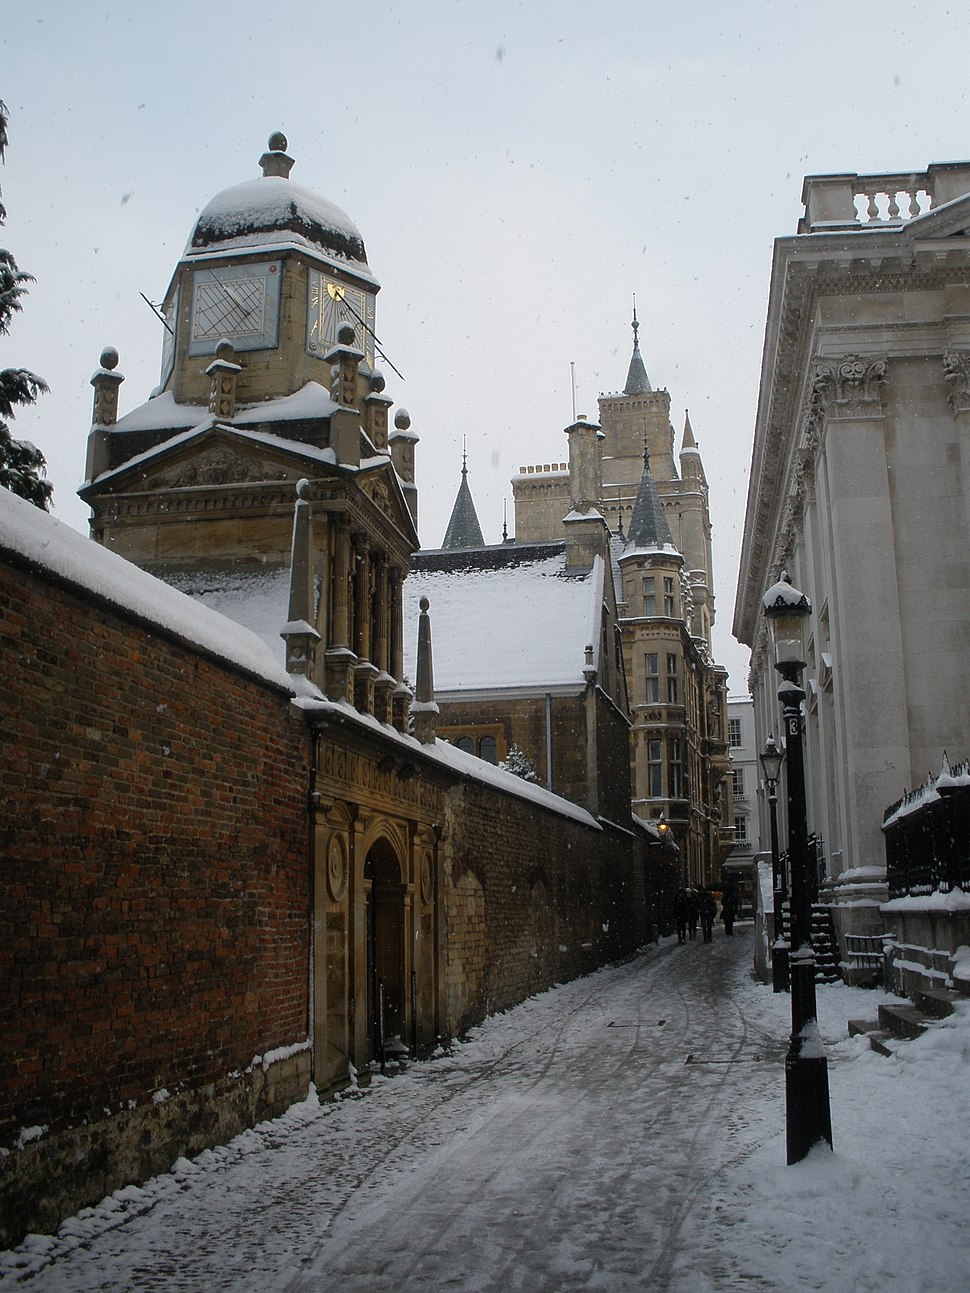 Senate House Passage in the snow